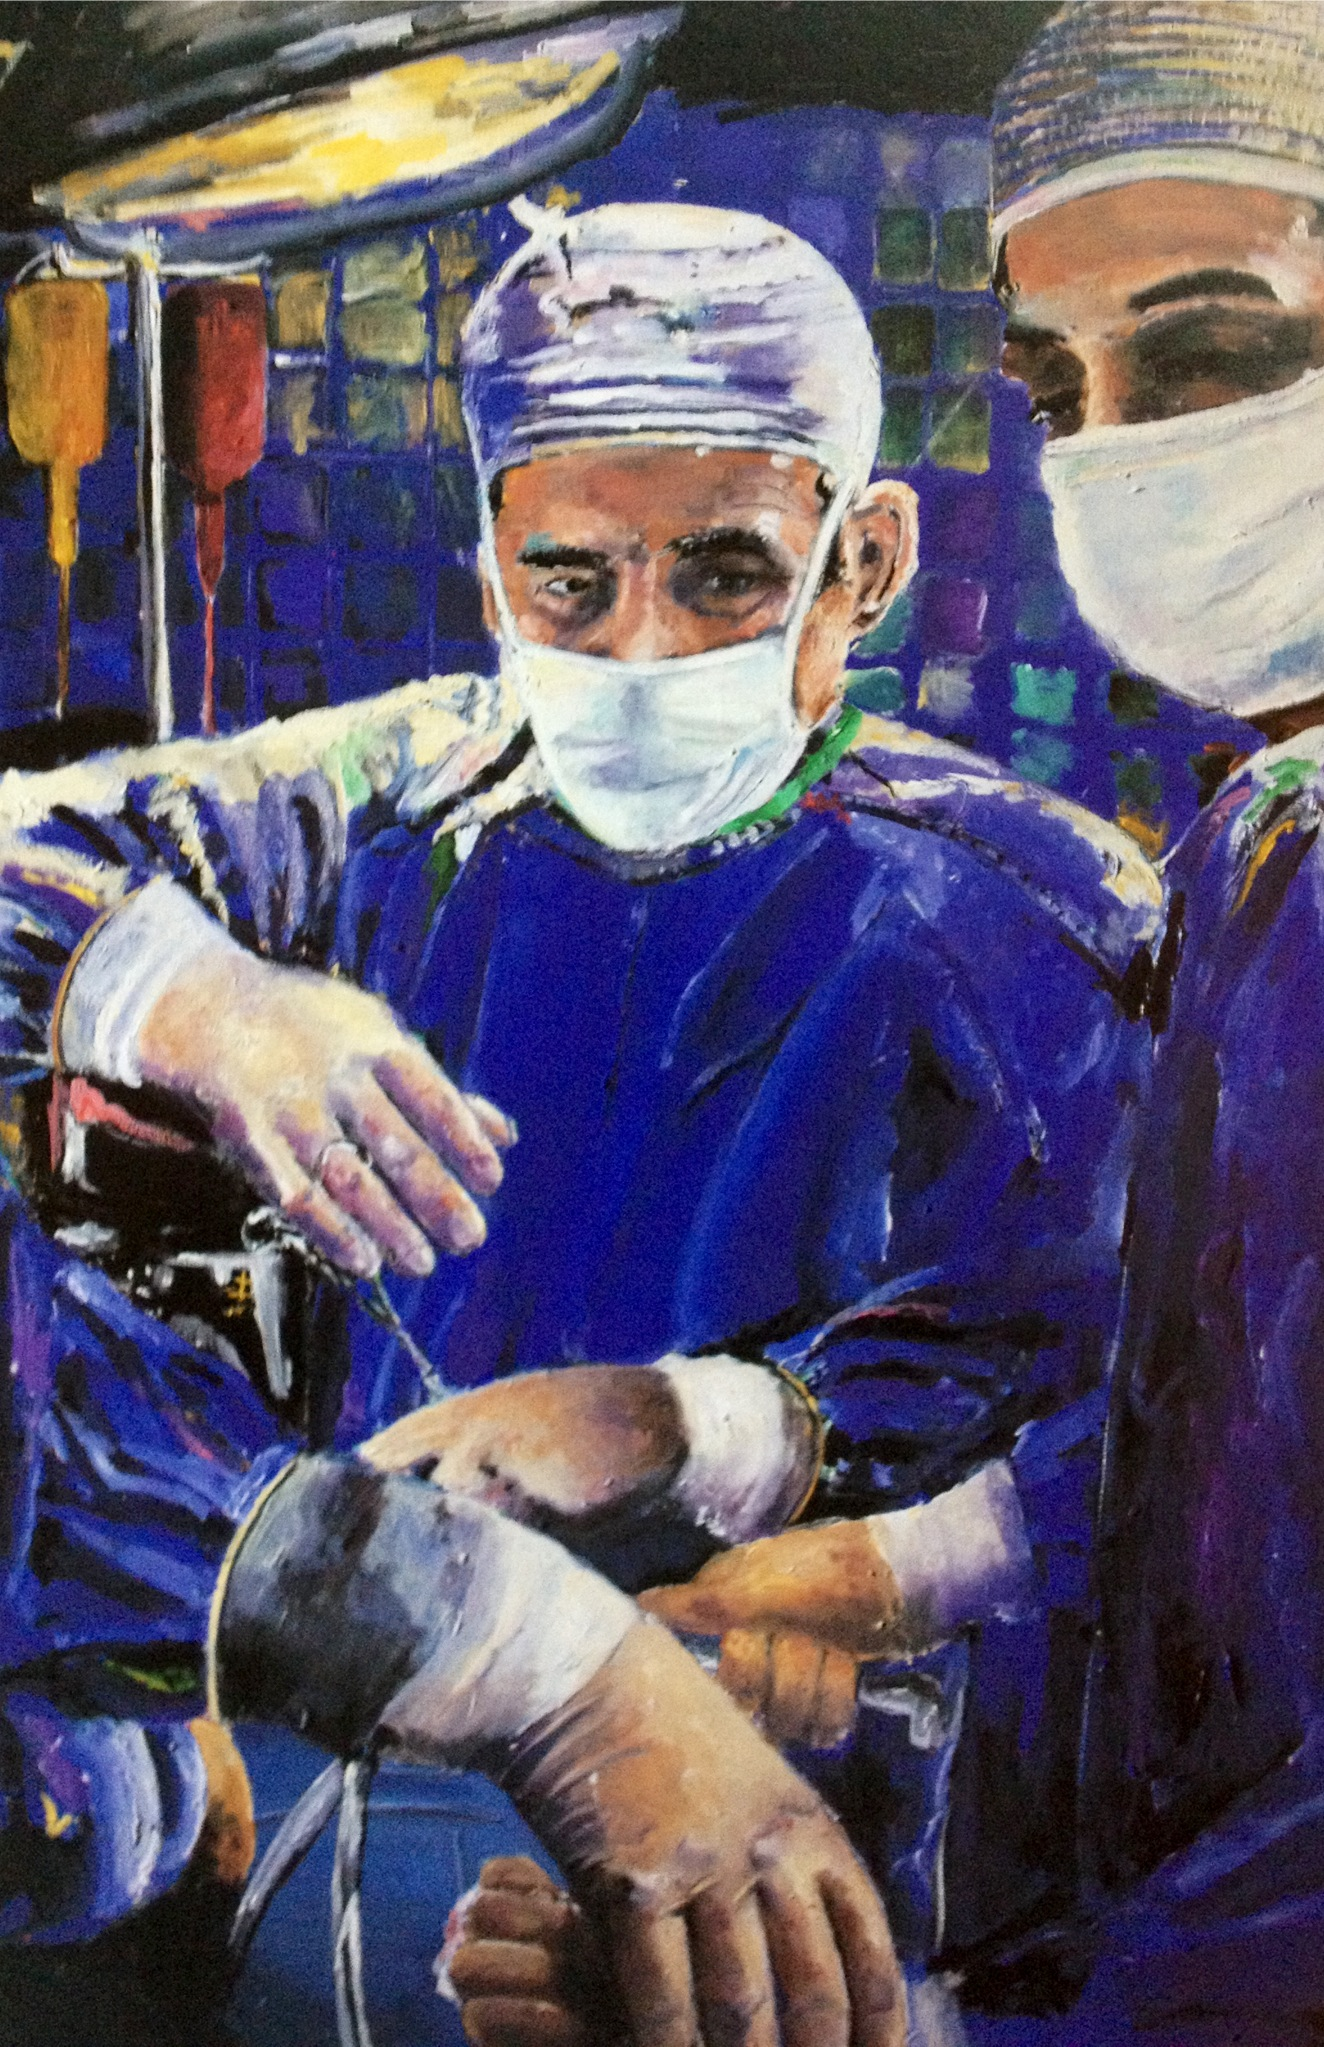 Magic Hands Of A Surgeon Performing Surgery Artwork for sale